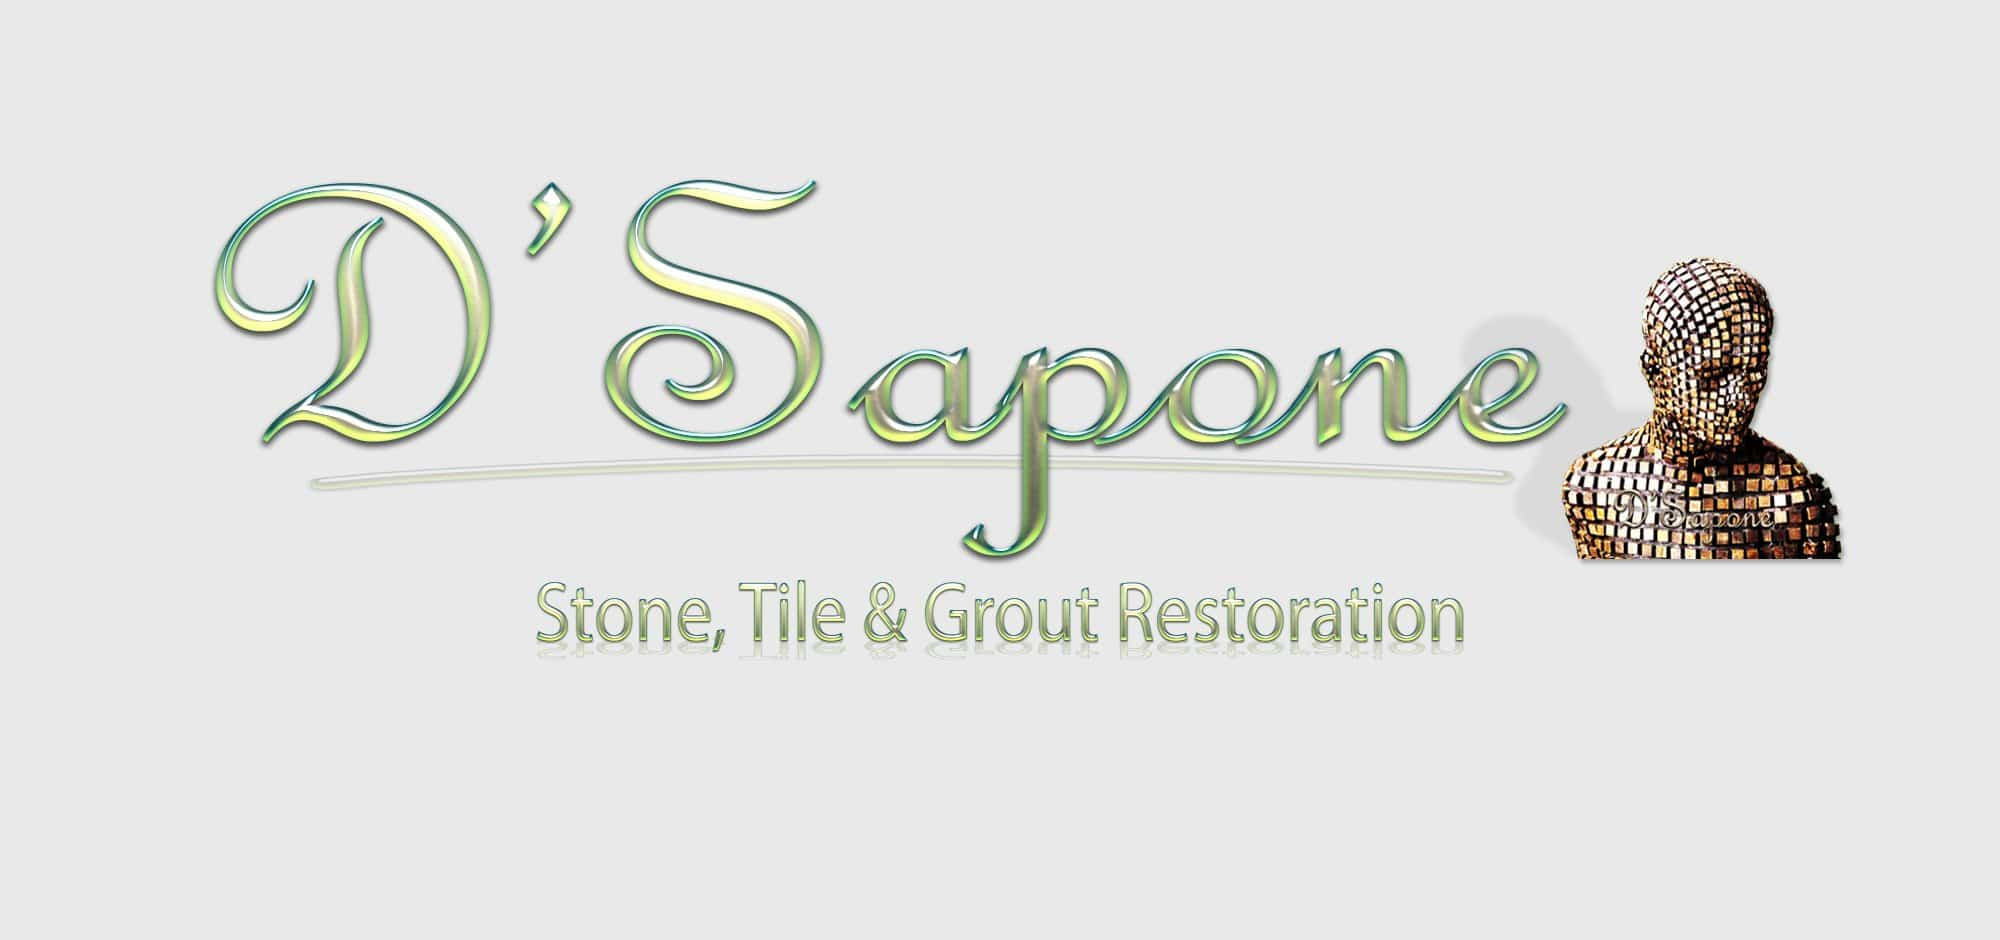 dsapone-tile-and-grout-restoration